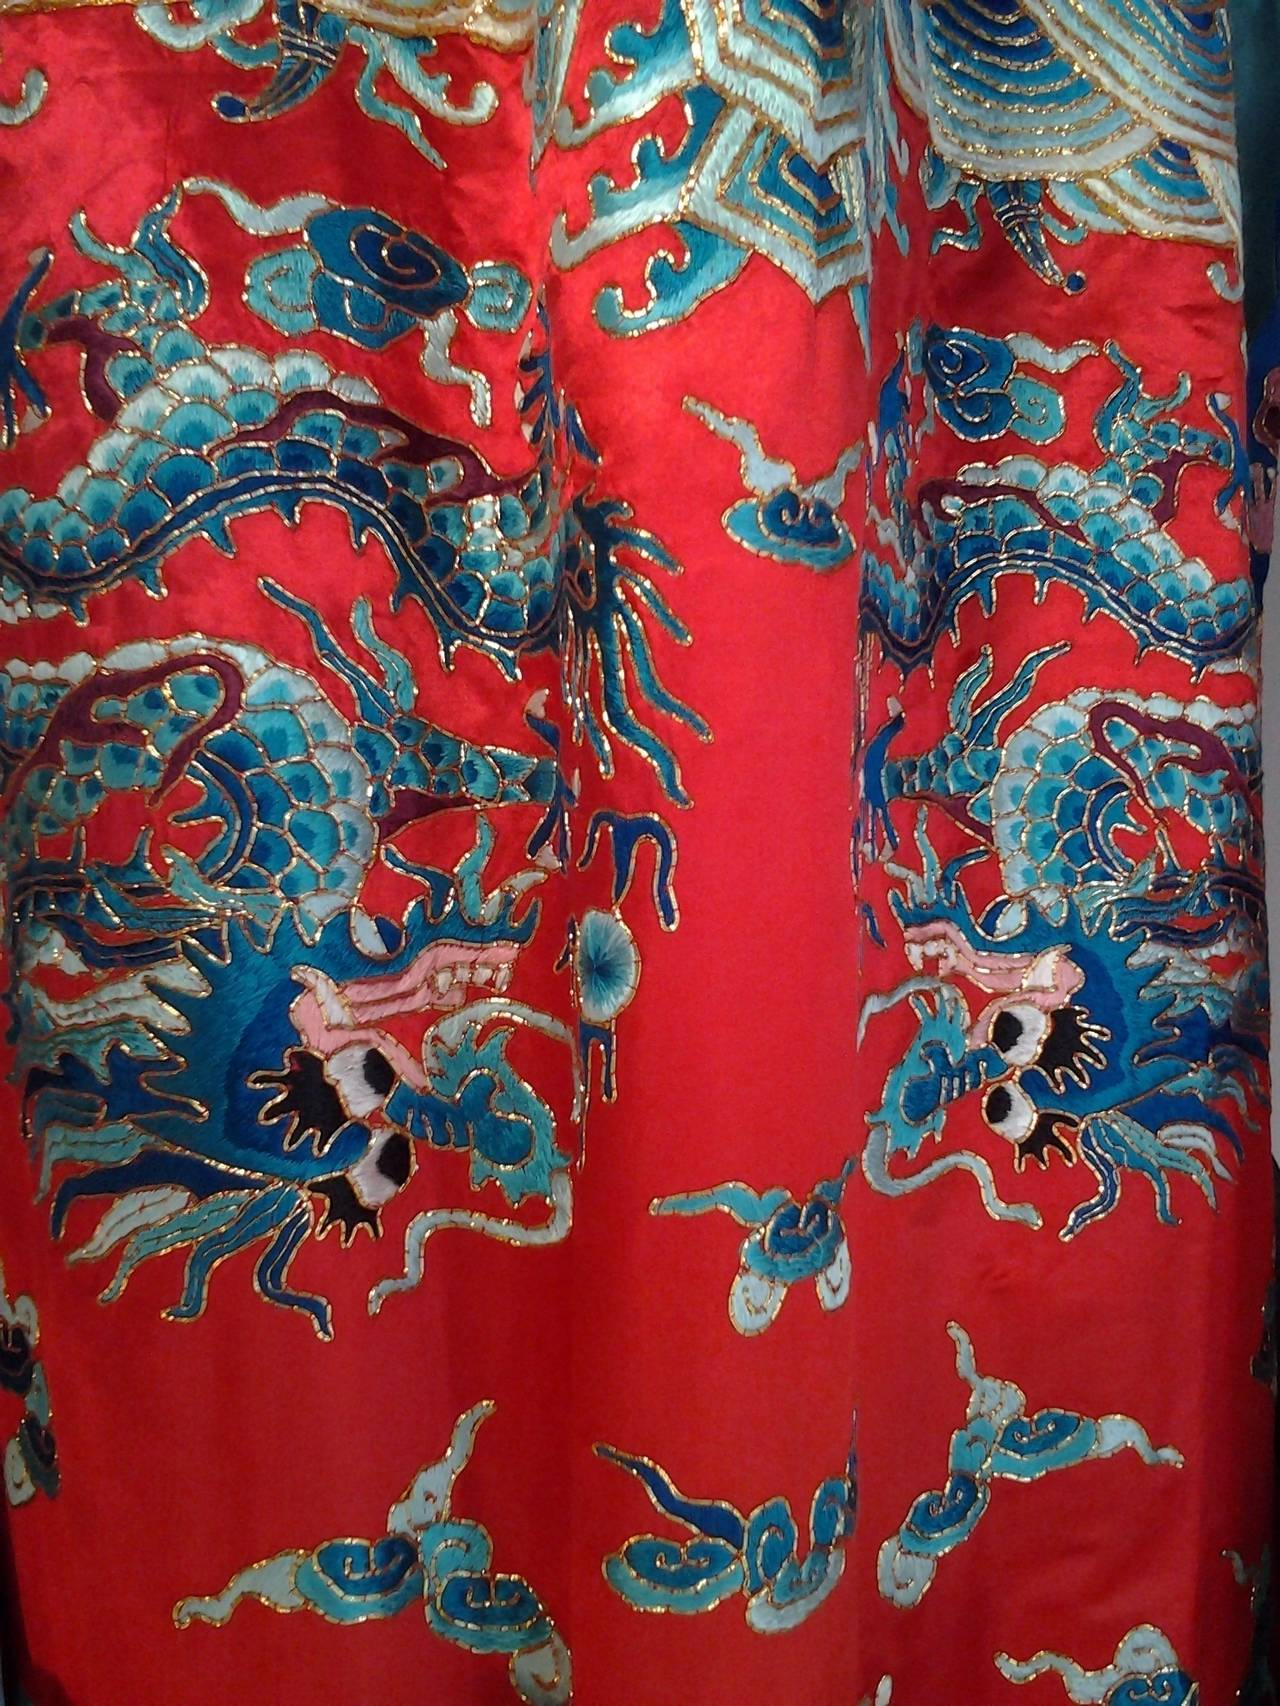 1940s Chinese Red Dragon Robe 3 Pieces 6